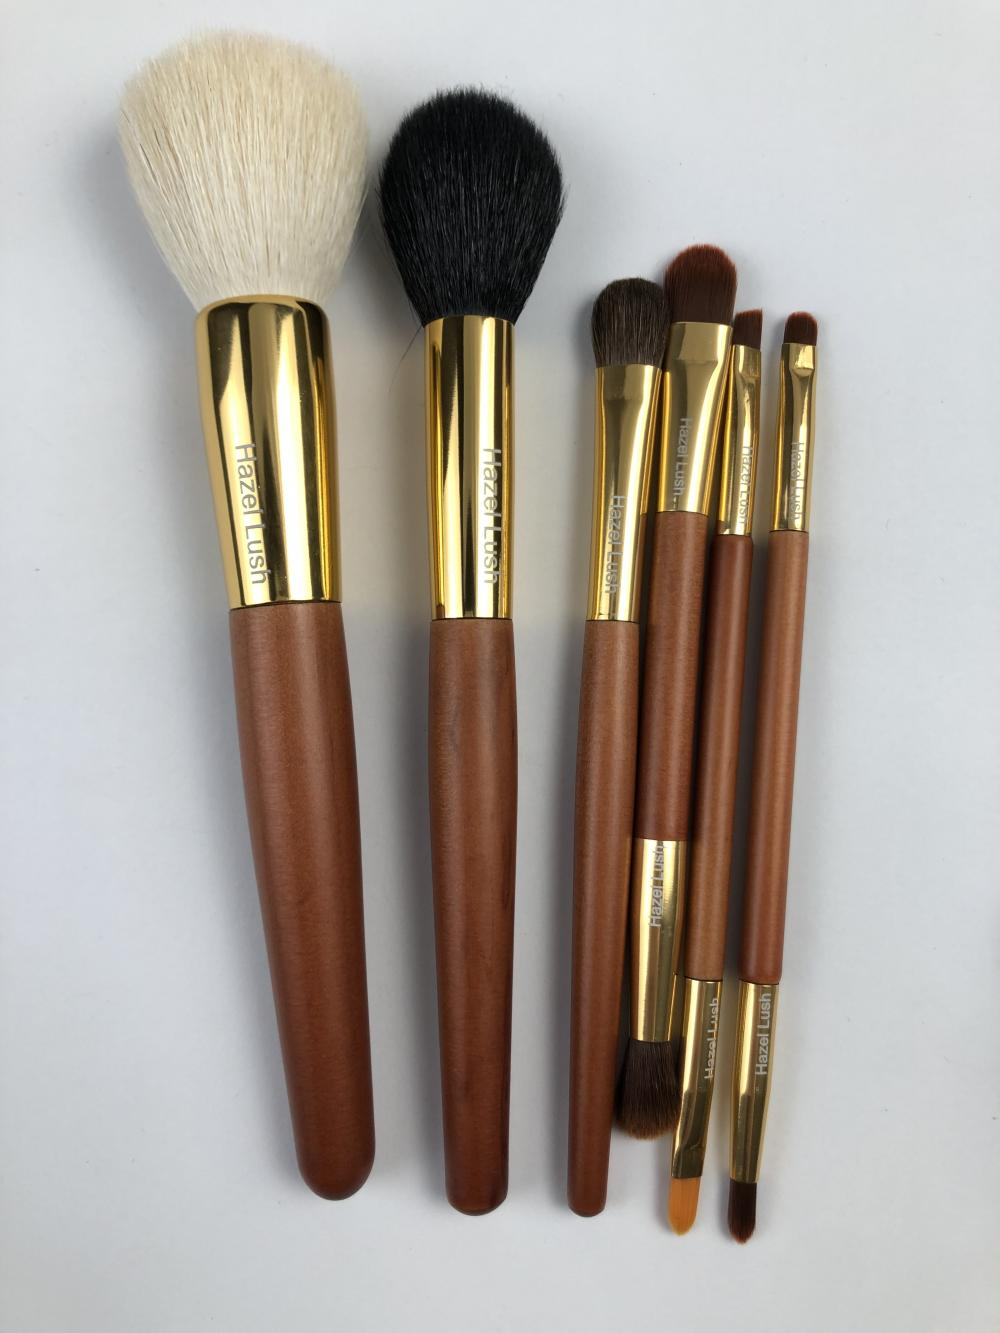 6 Pc Wooden Makeup Brush Set For Hazel Lush